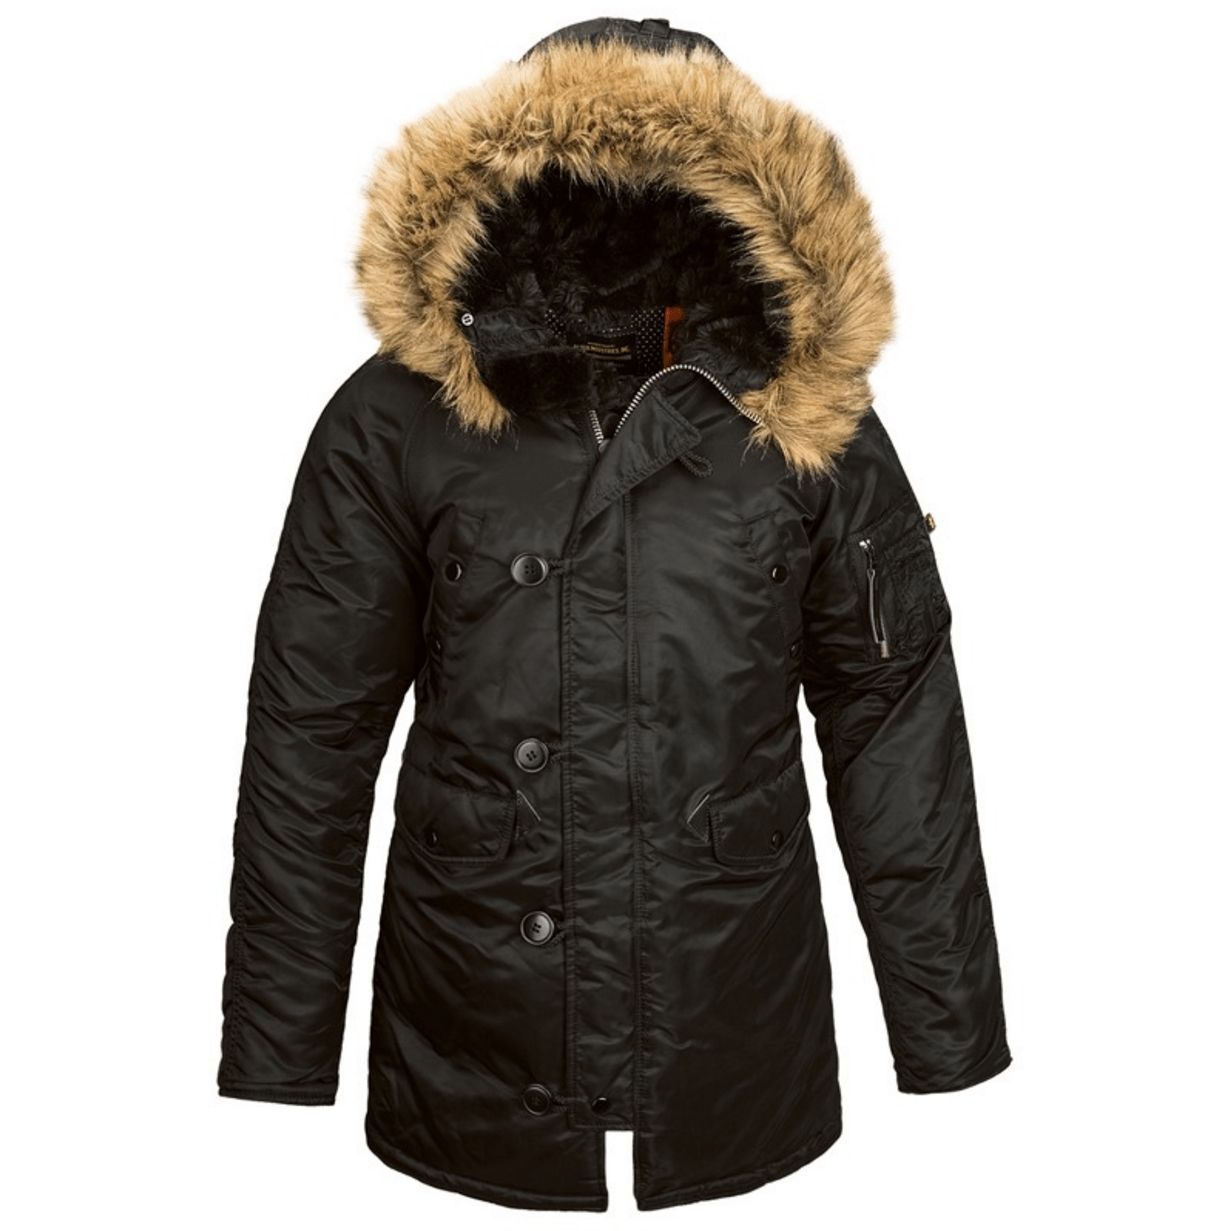 Alpha winterjacke amazon